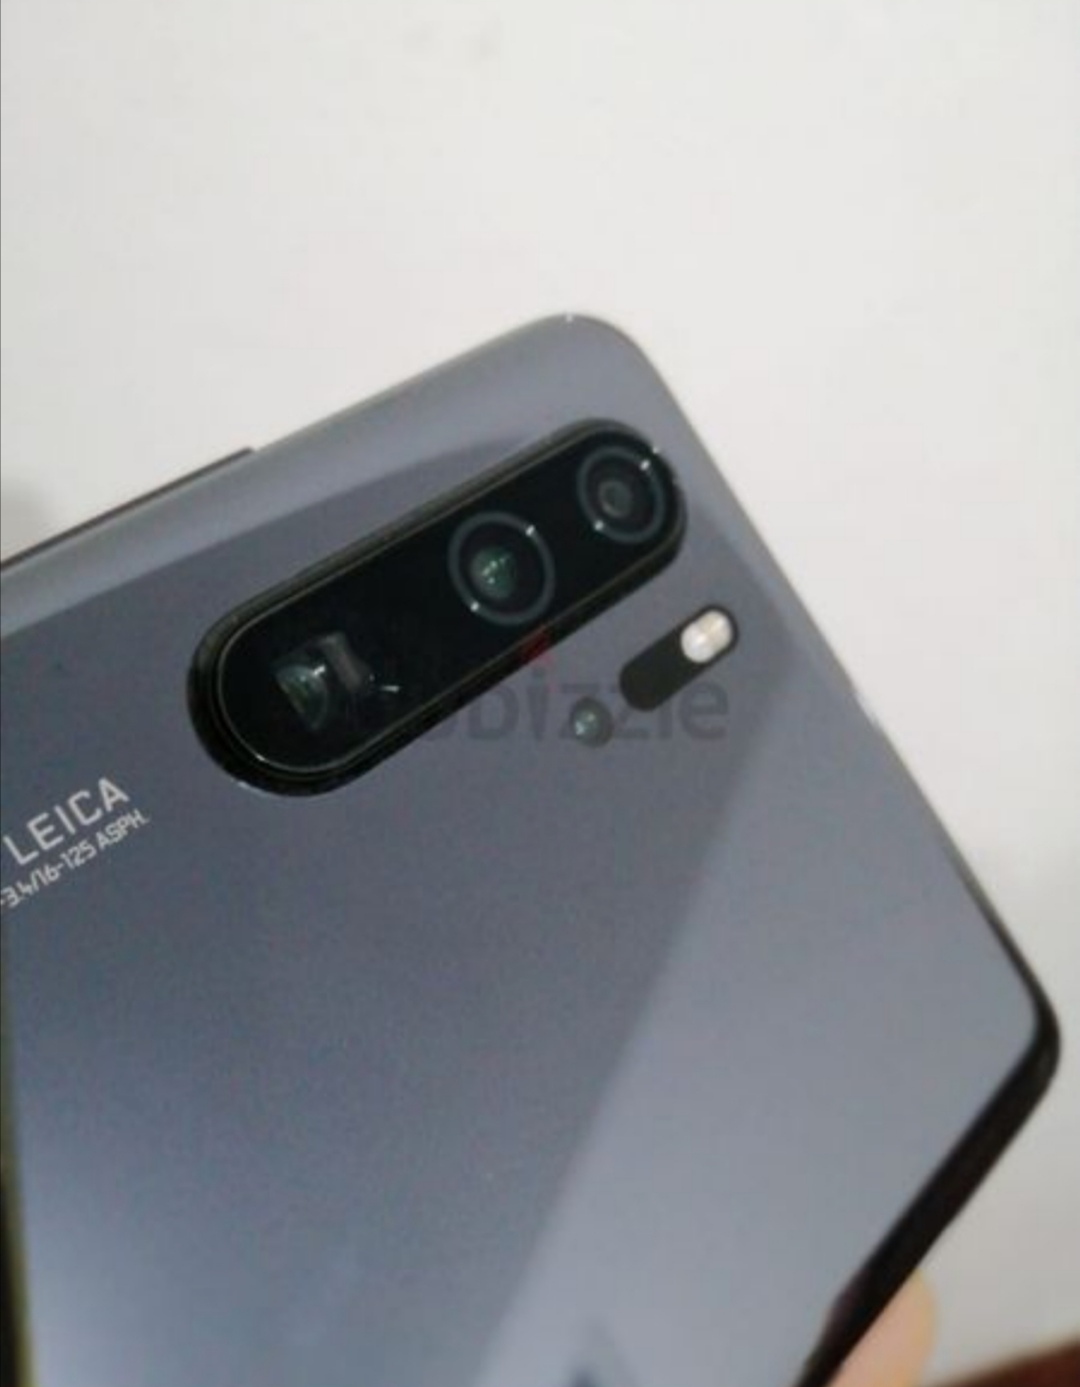 Huawei p30 pro for sale in pakistan - photo 1